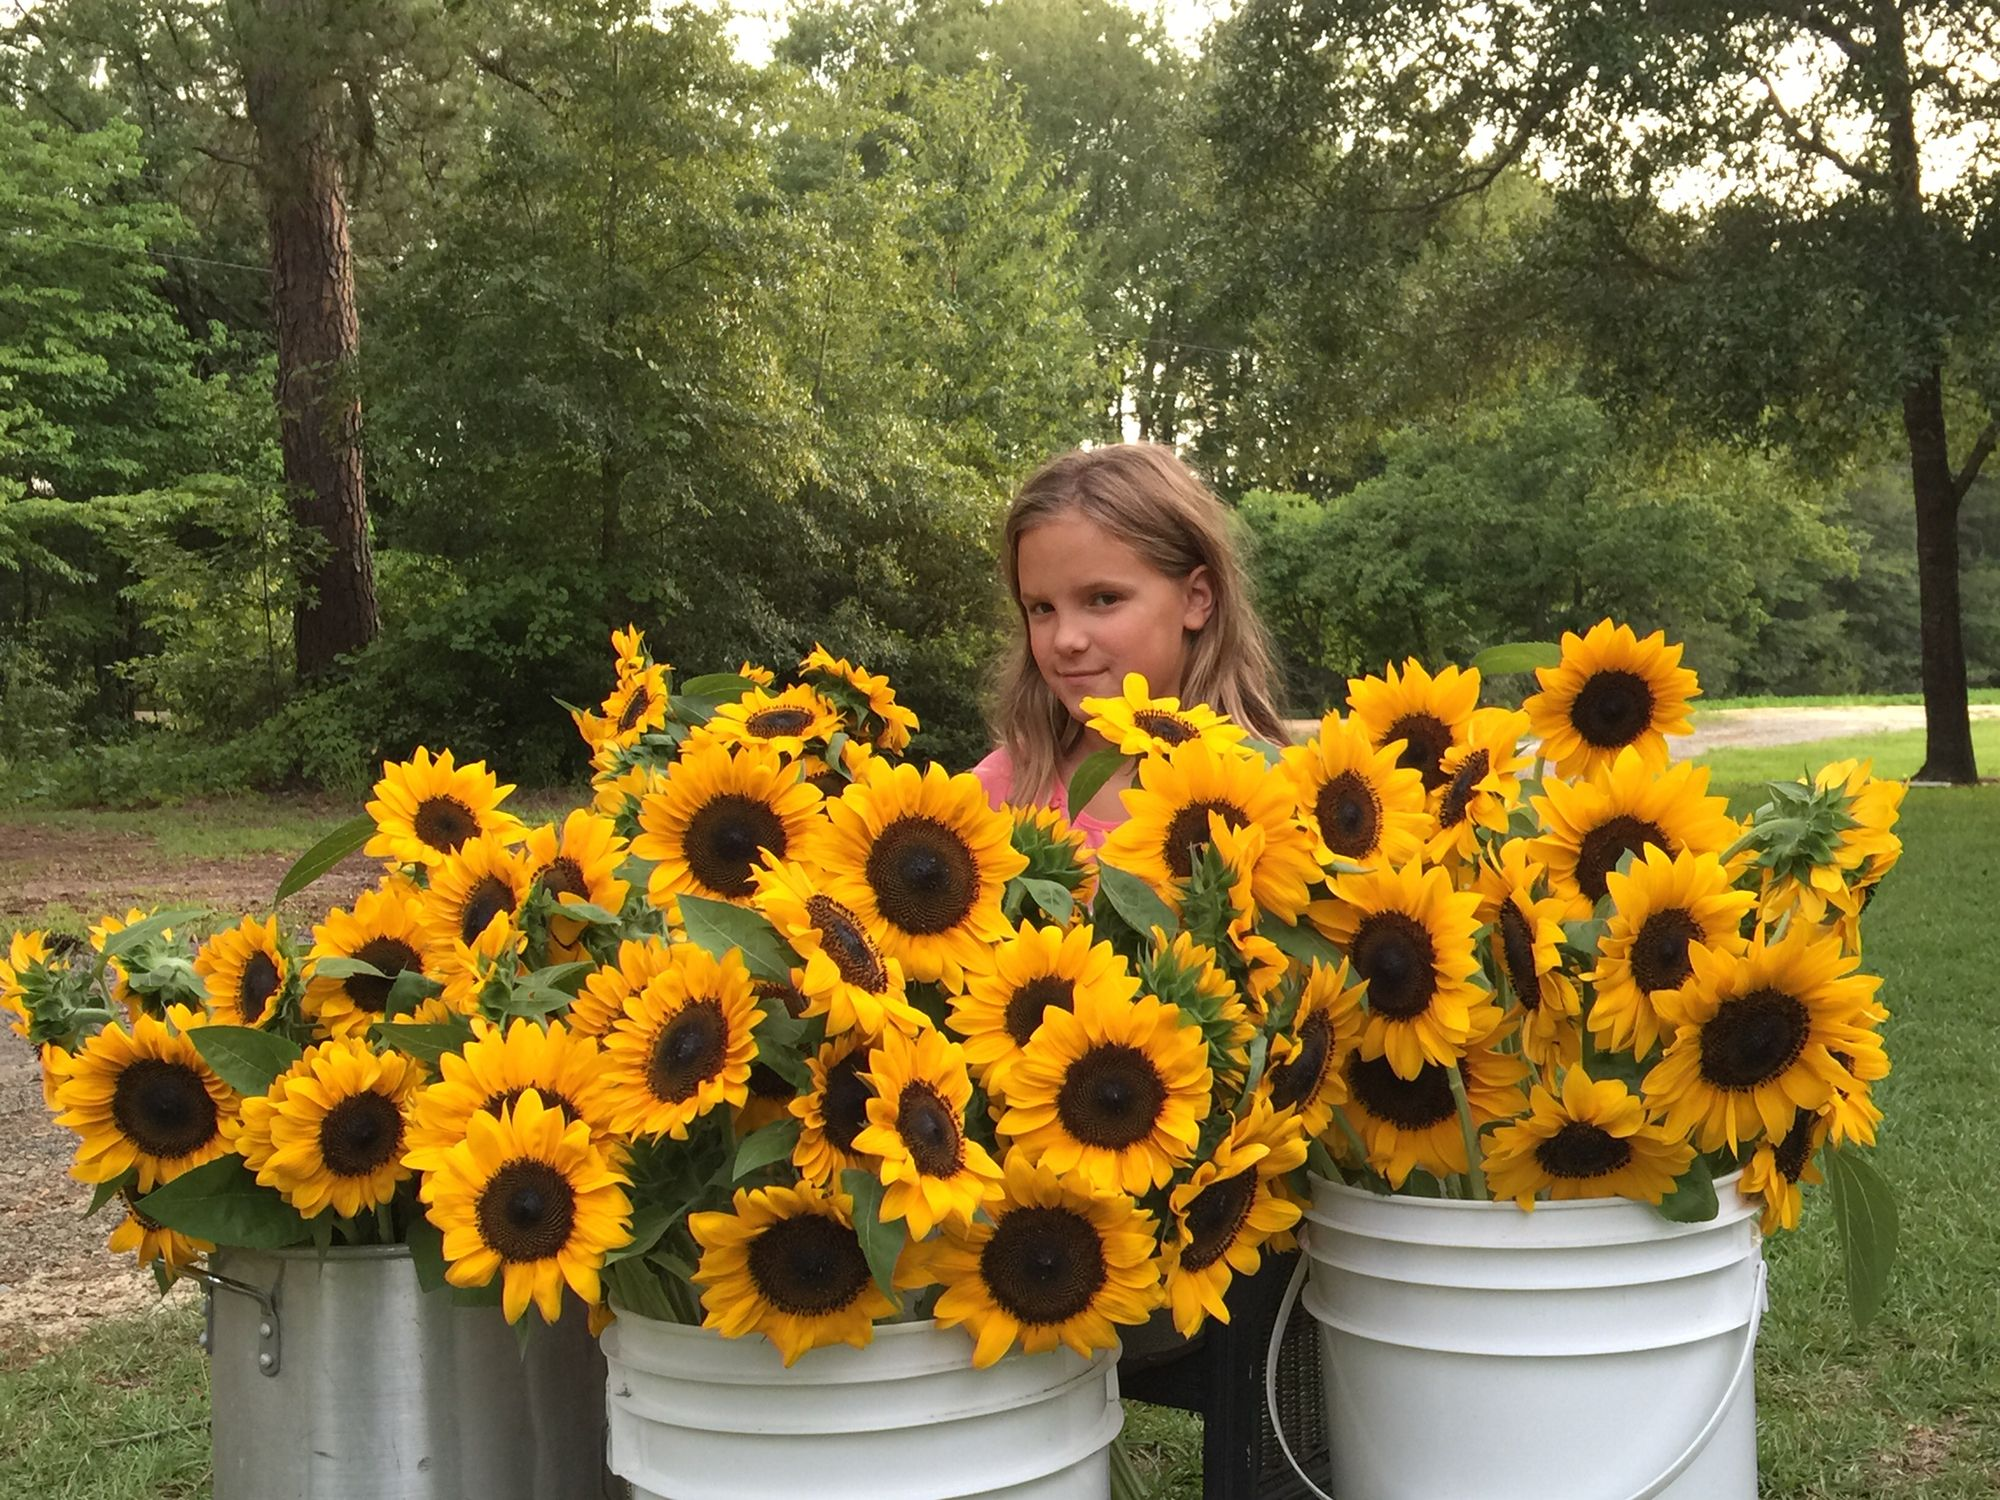 Gorgeous sunflowers from WilMor Farms, Metter,Ga! God's bountiful beauty!